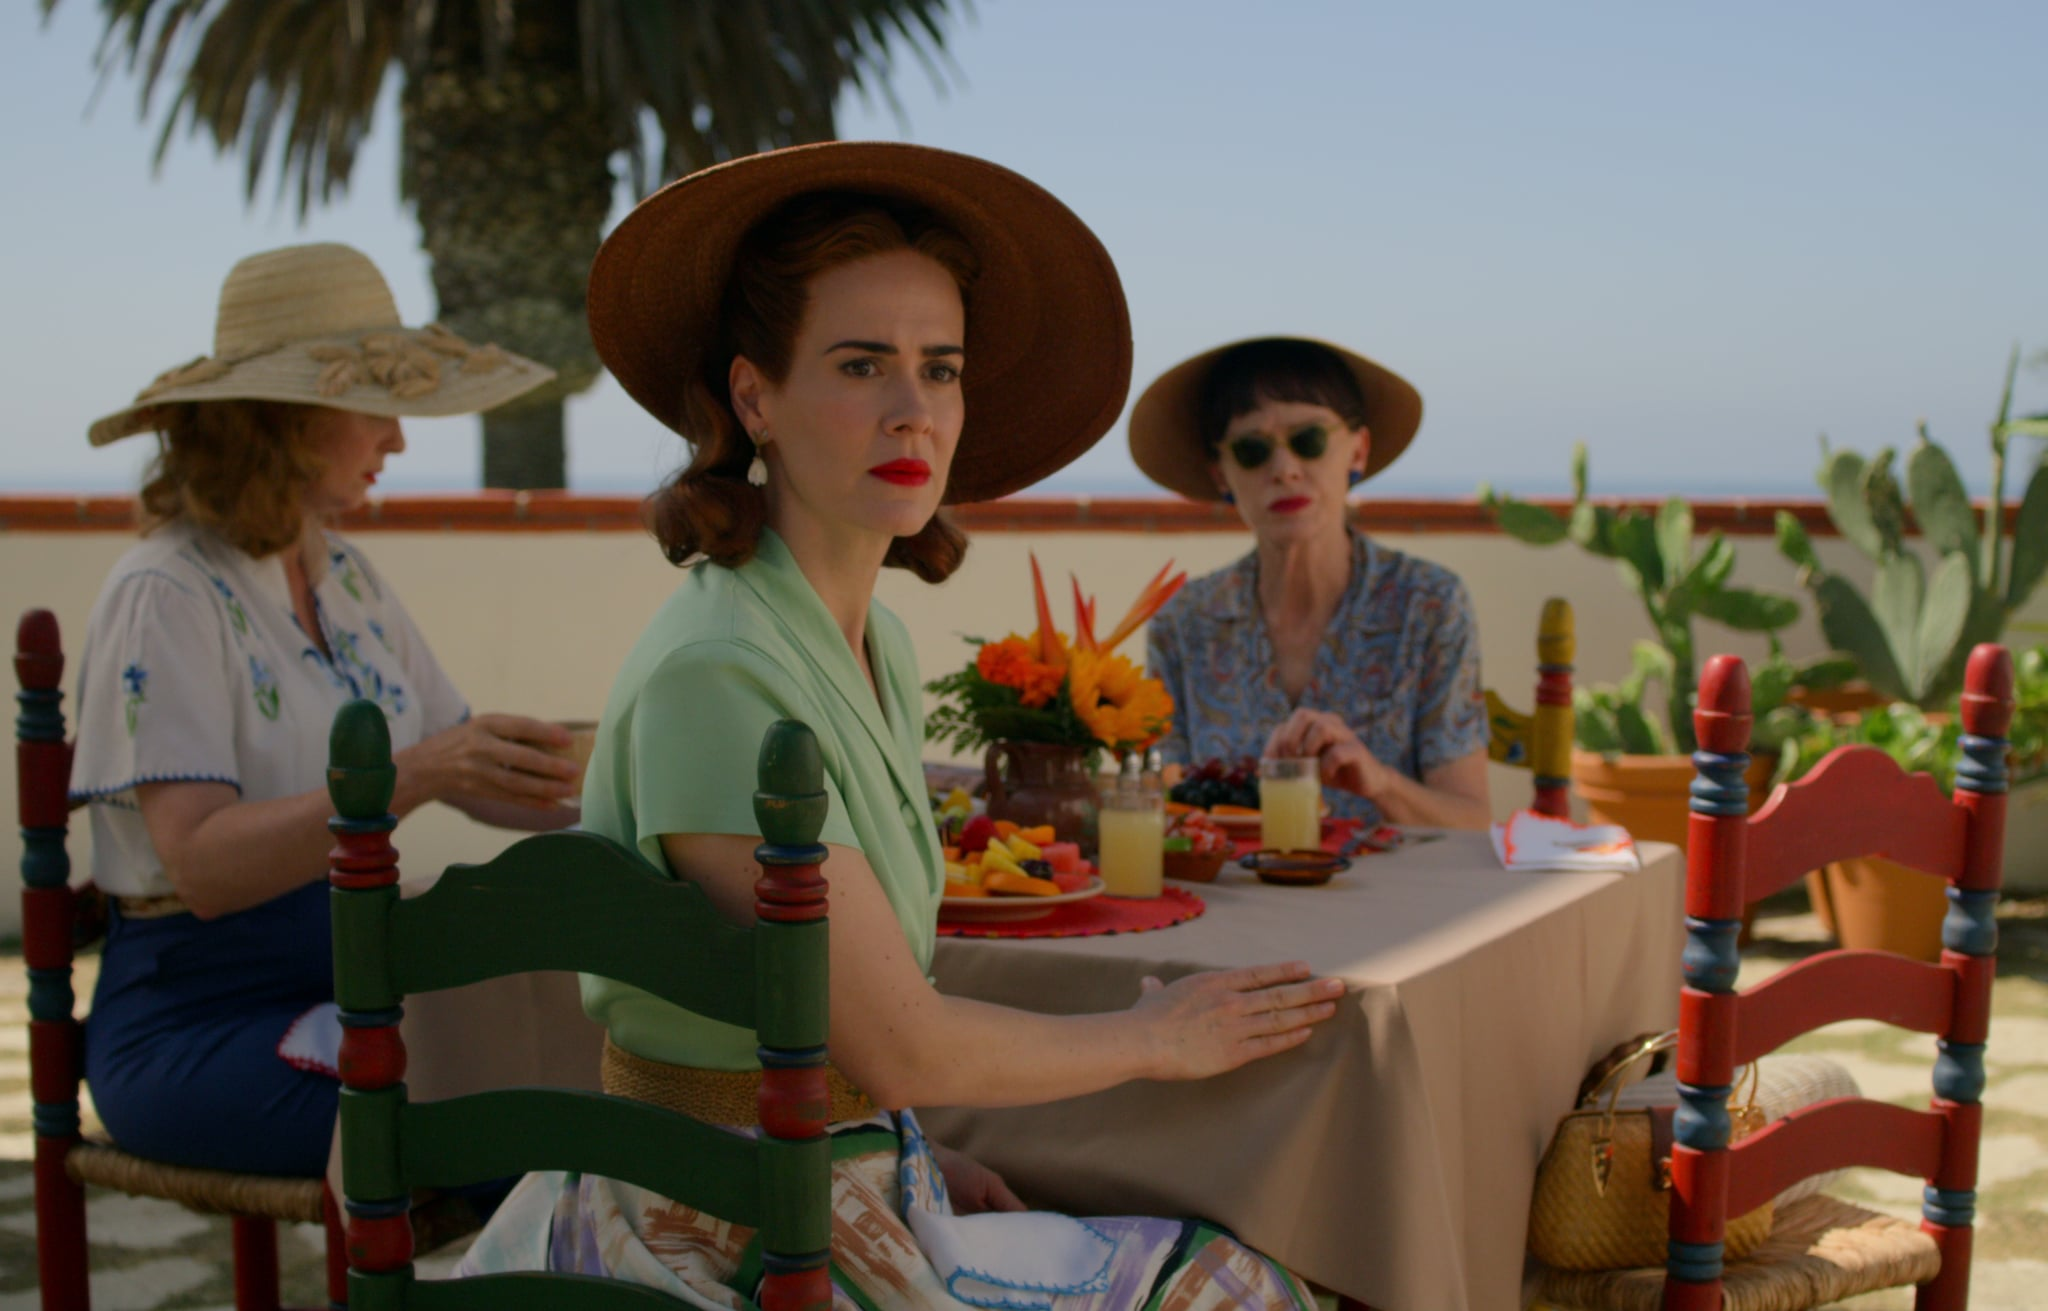 RATCHED (L to R) CYNTHIA NIXON as GWENDOLYN BRIGGS, SARAH PAULSON as MILDRED RATCHED and JUDY DAVIS as NURSE BETSY BUCKET in episode 108 of  Cr. COURTESY OF NETFLIX  2020